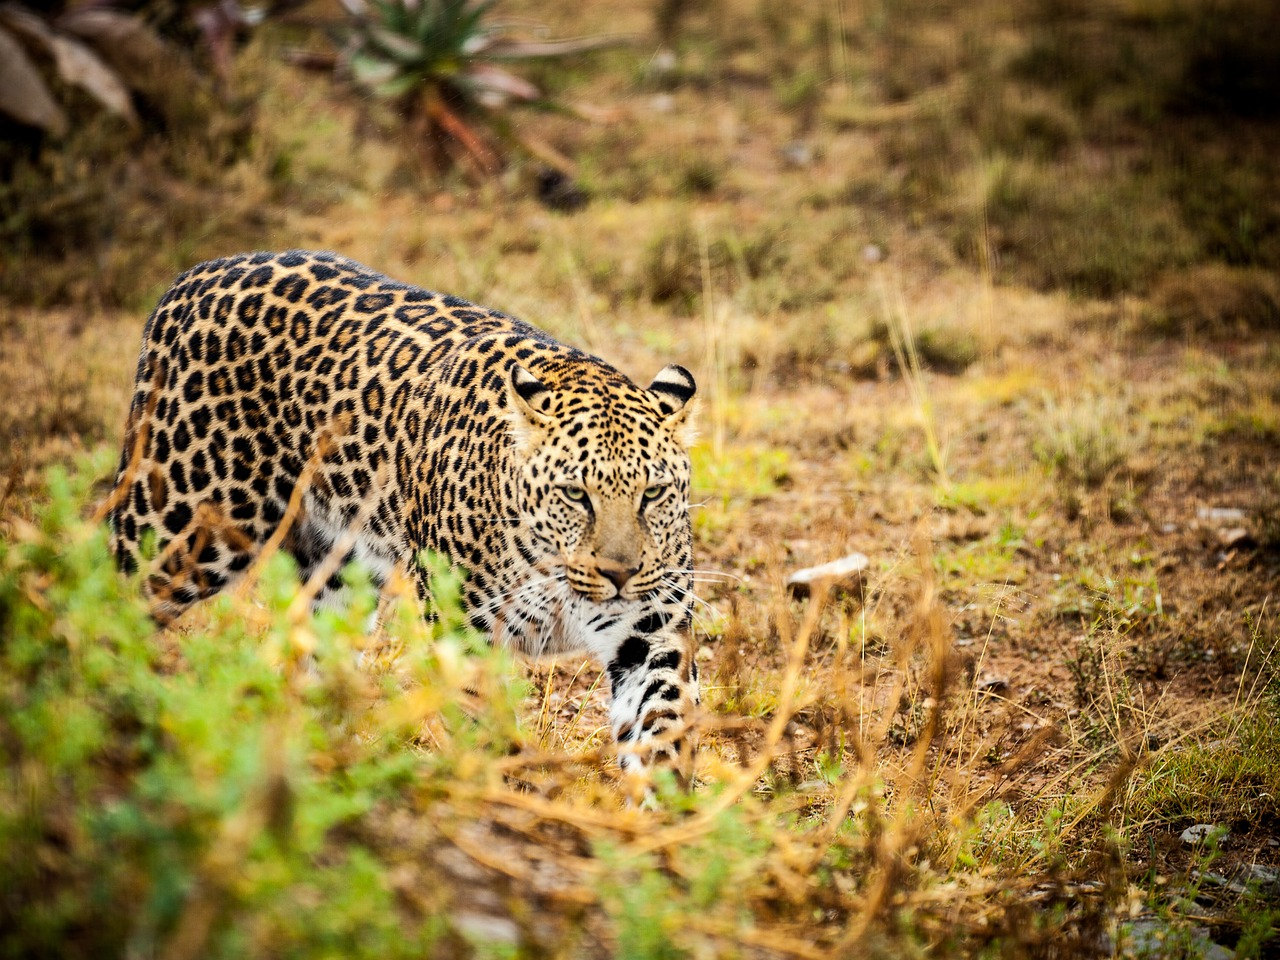 Wild cat with leopard spots